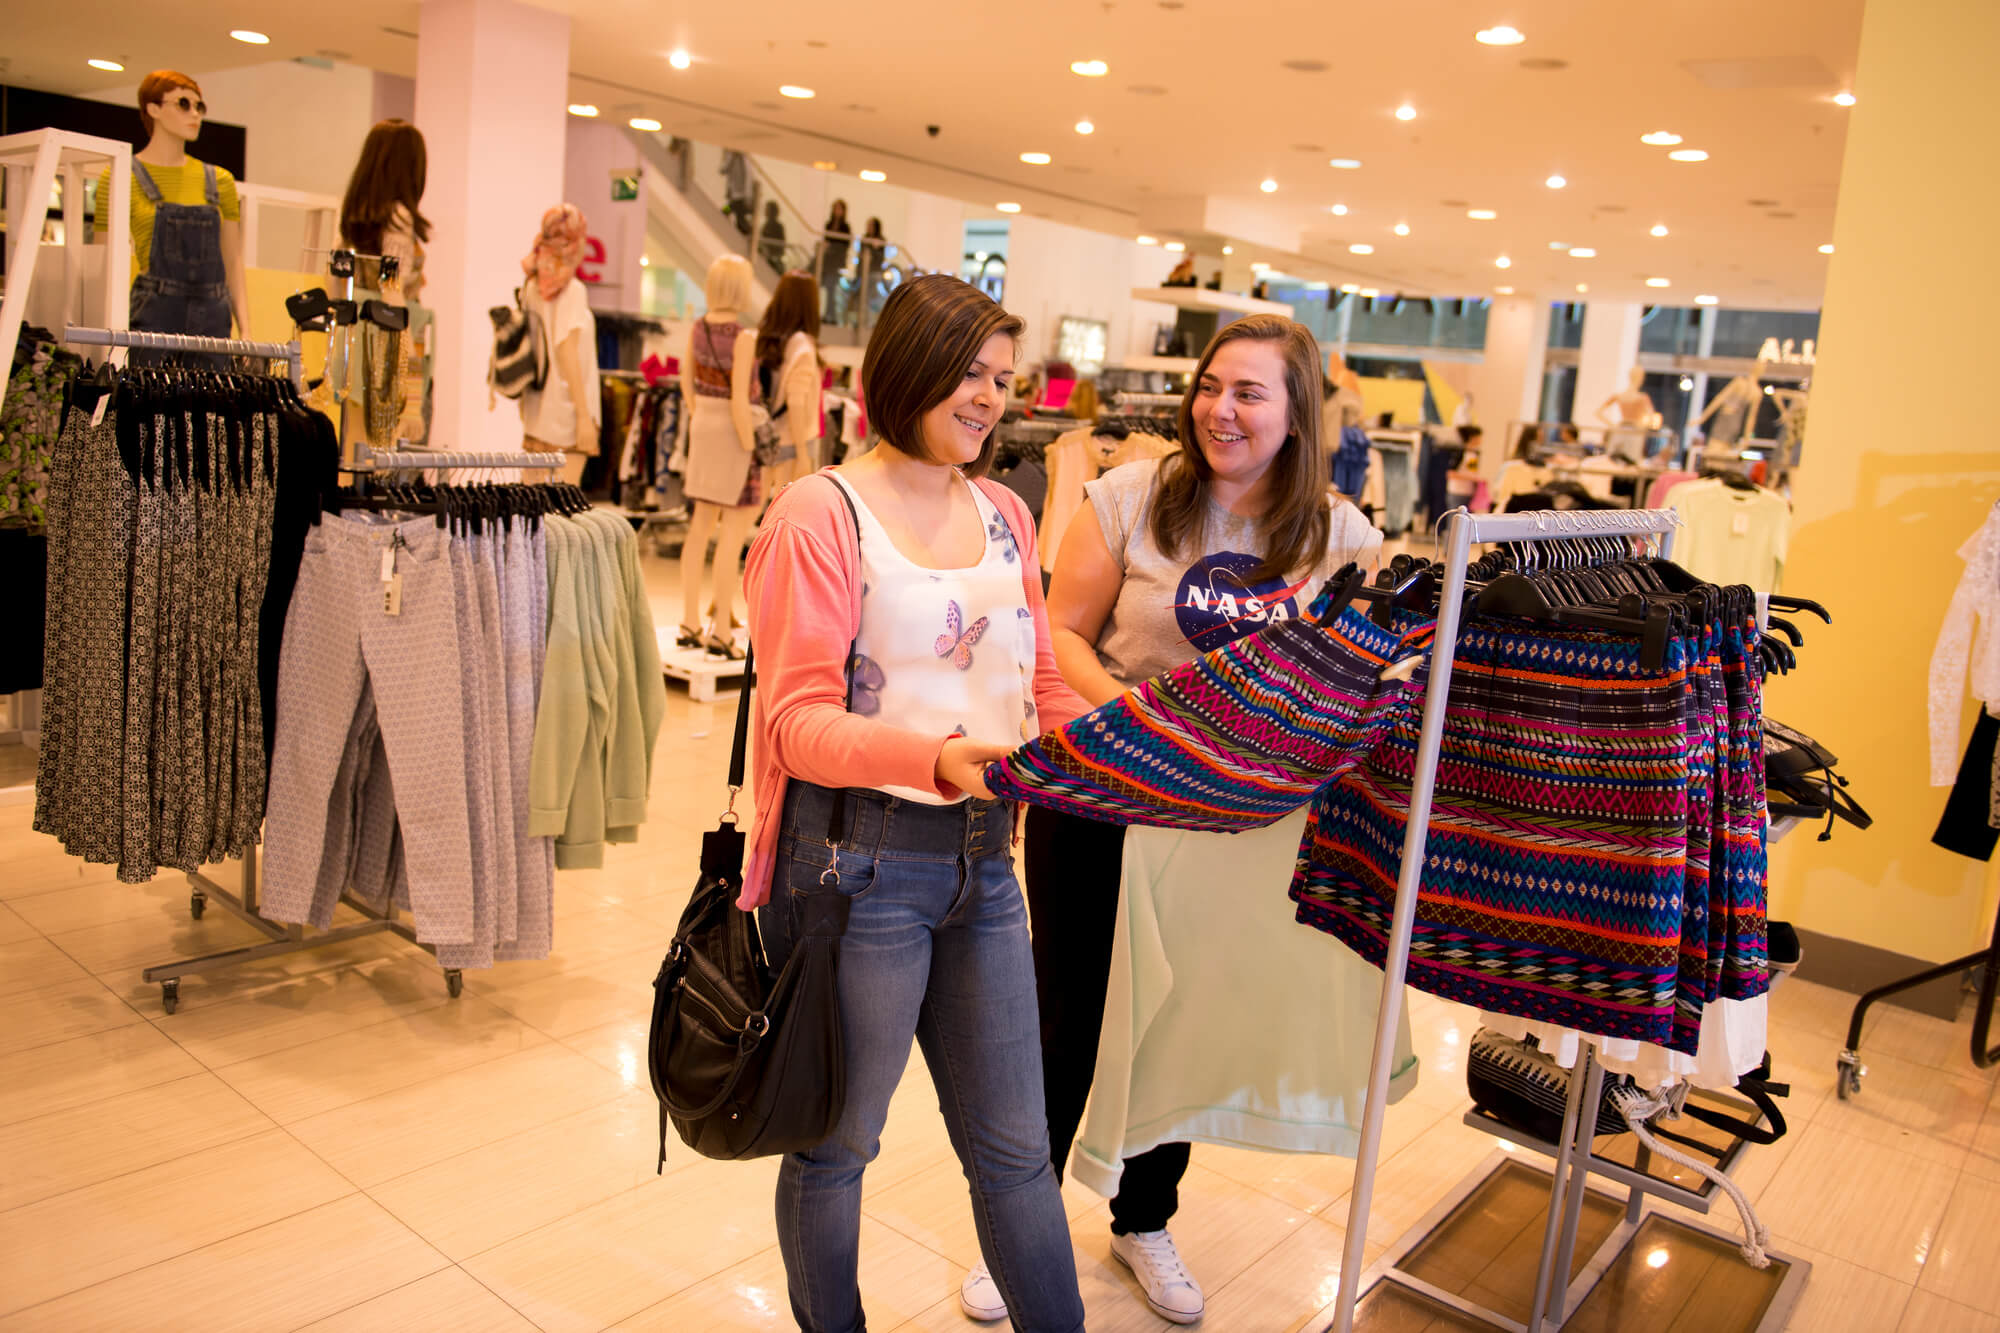 Students browsing at Intu Derby